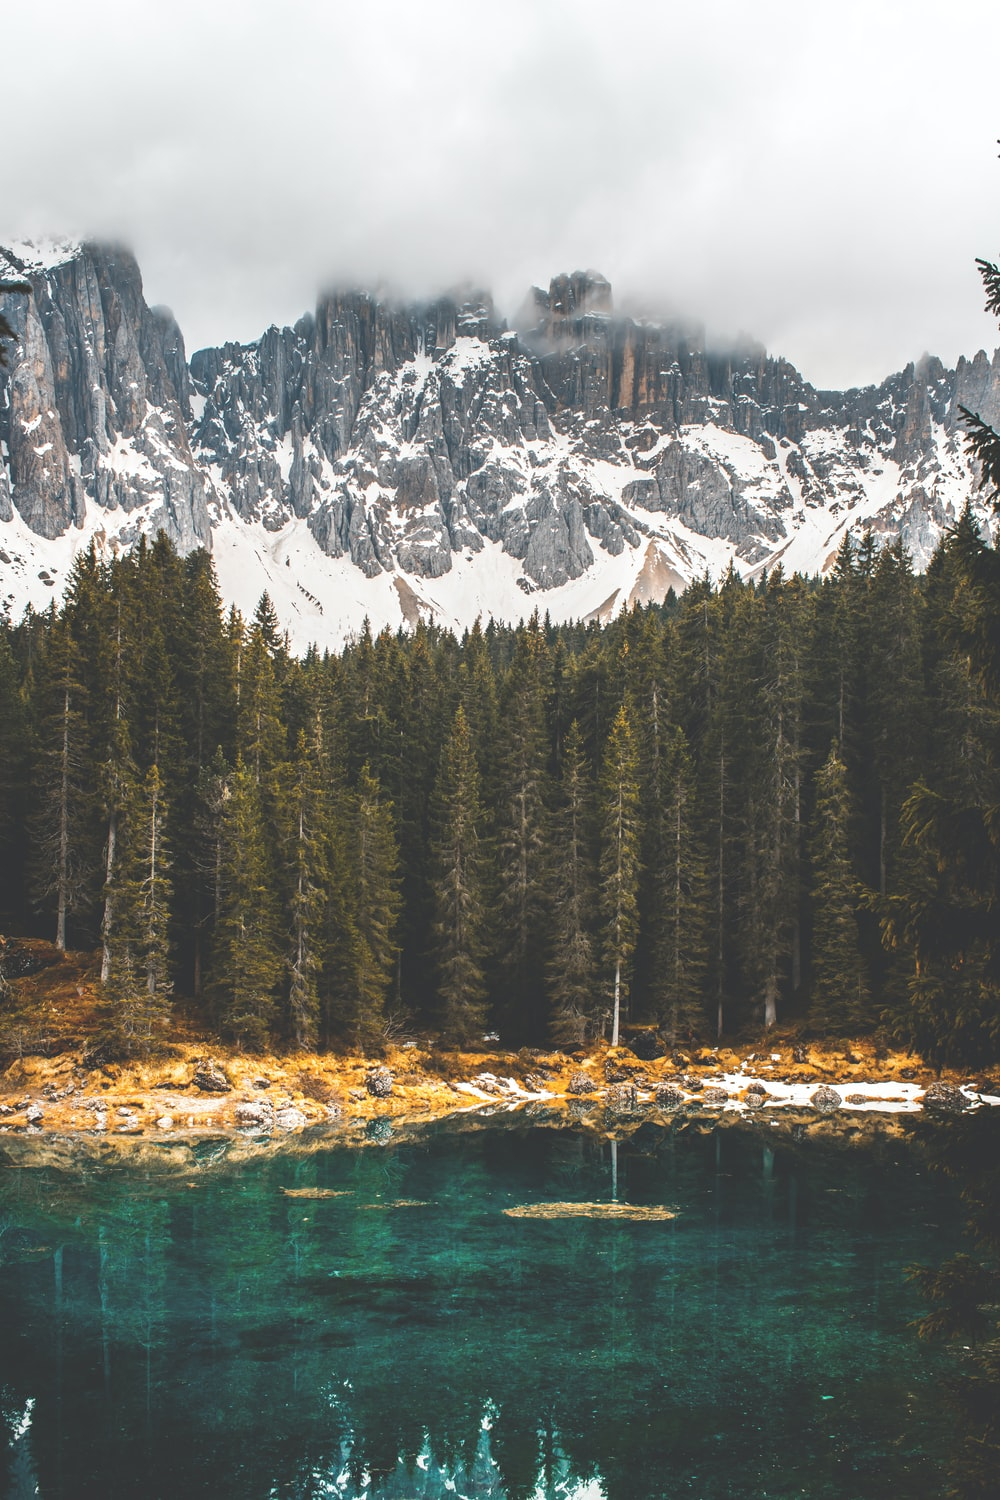 body of water near pine trees with snow-capped mountain at distance